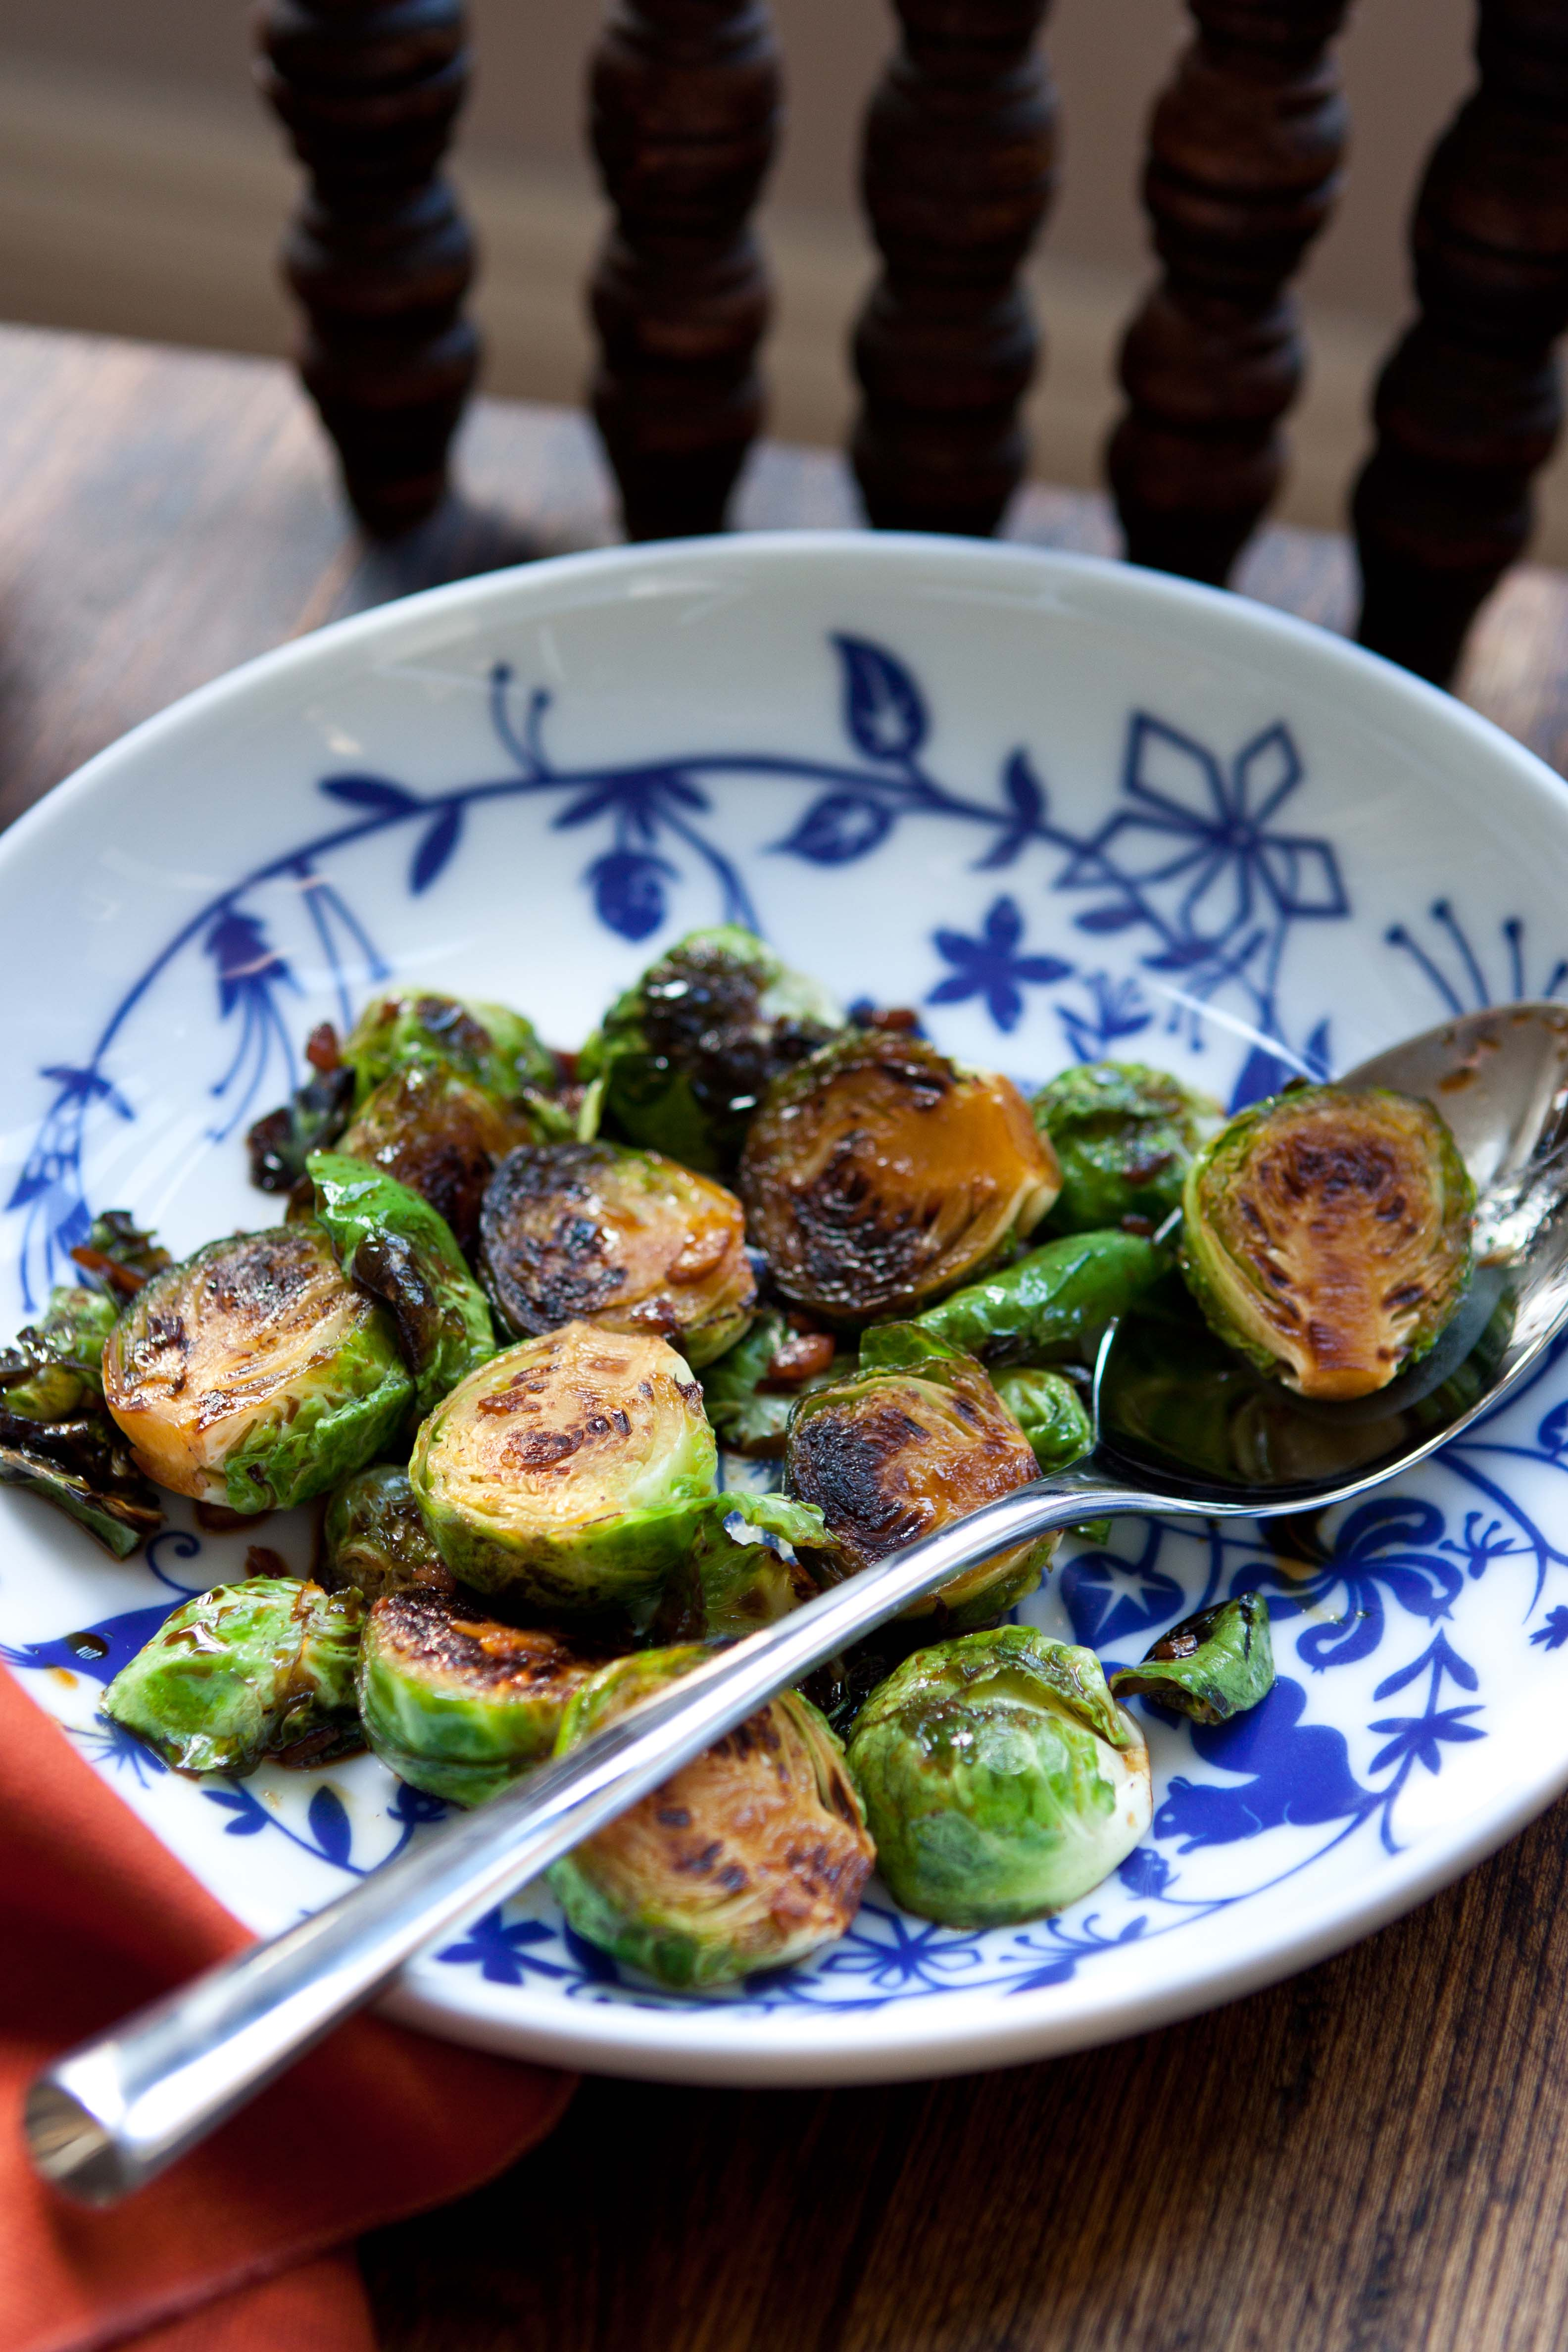 Astonishing Really Crazy Good Brussels Sprouts Five And Spice Hairstyles For Women Draintrainus